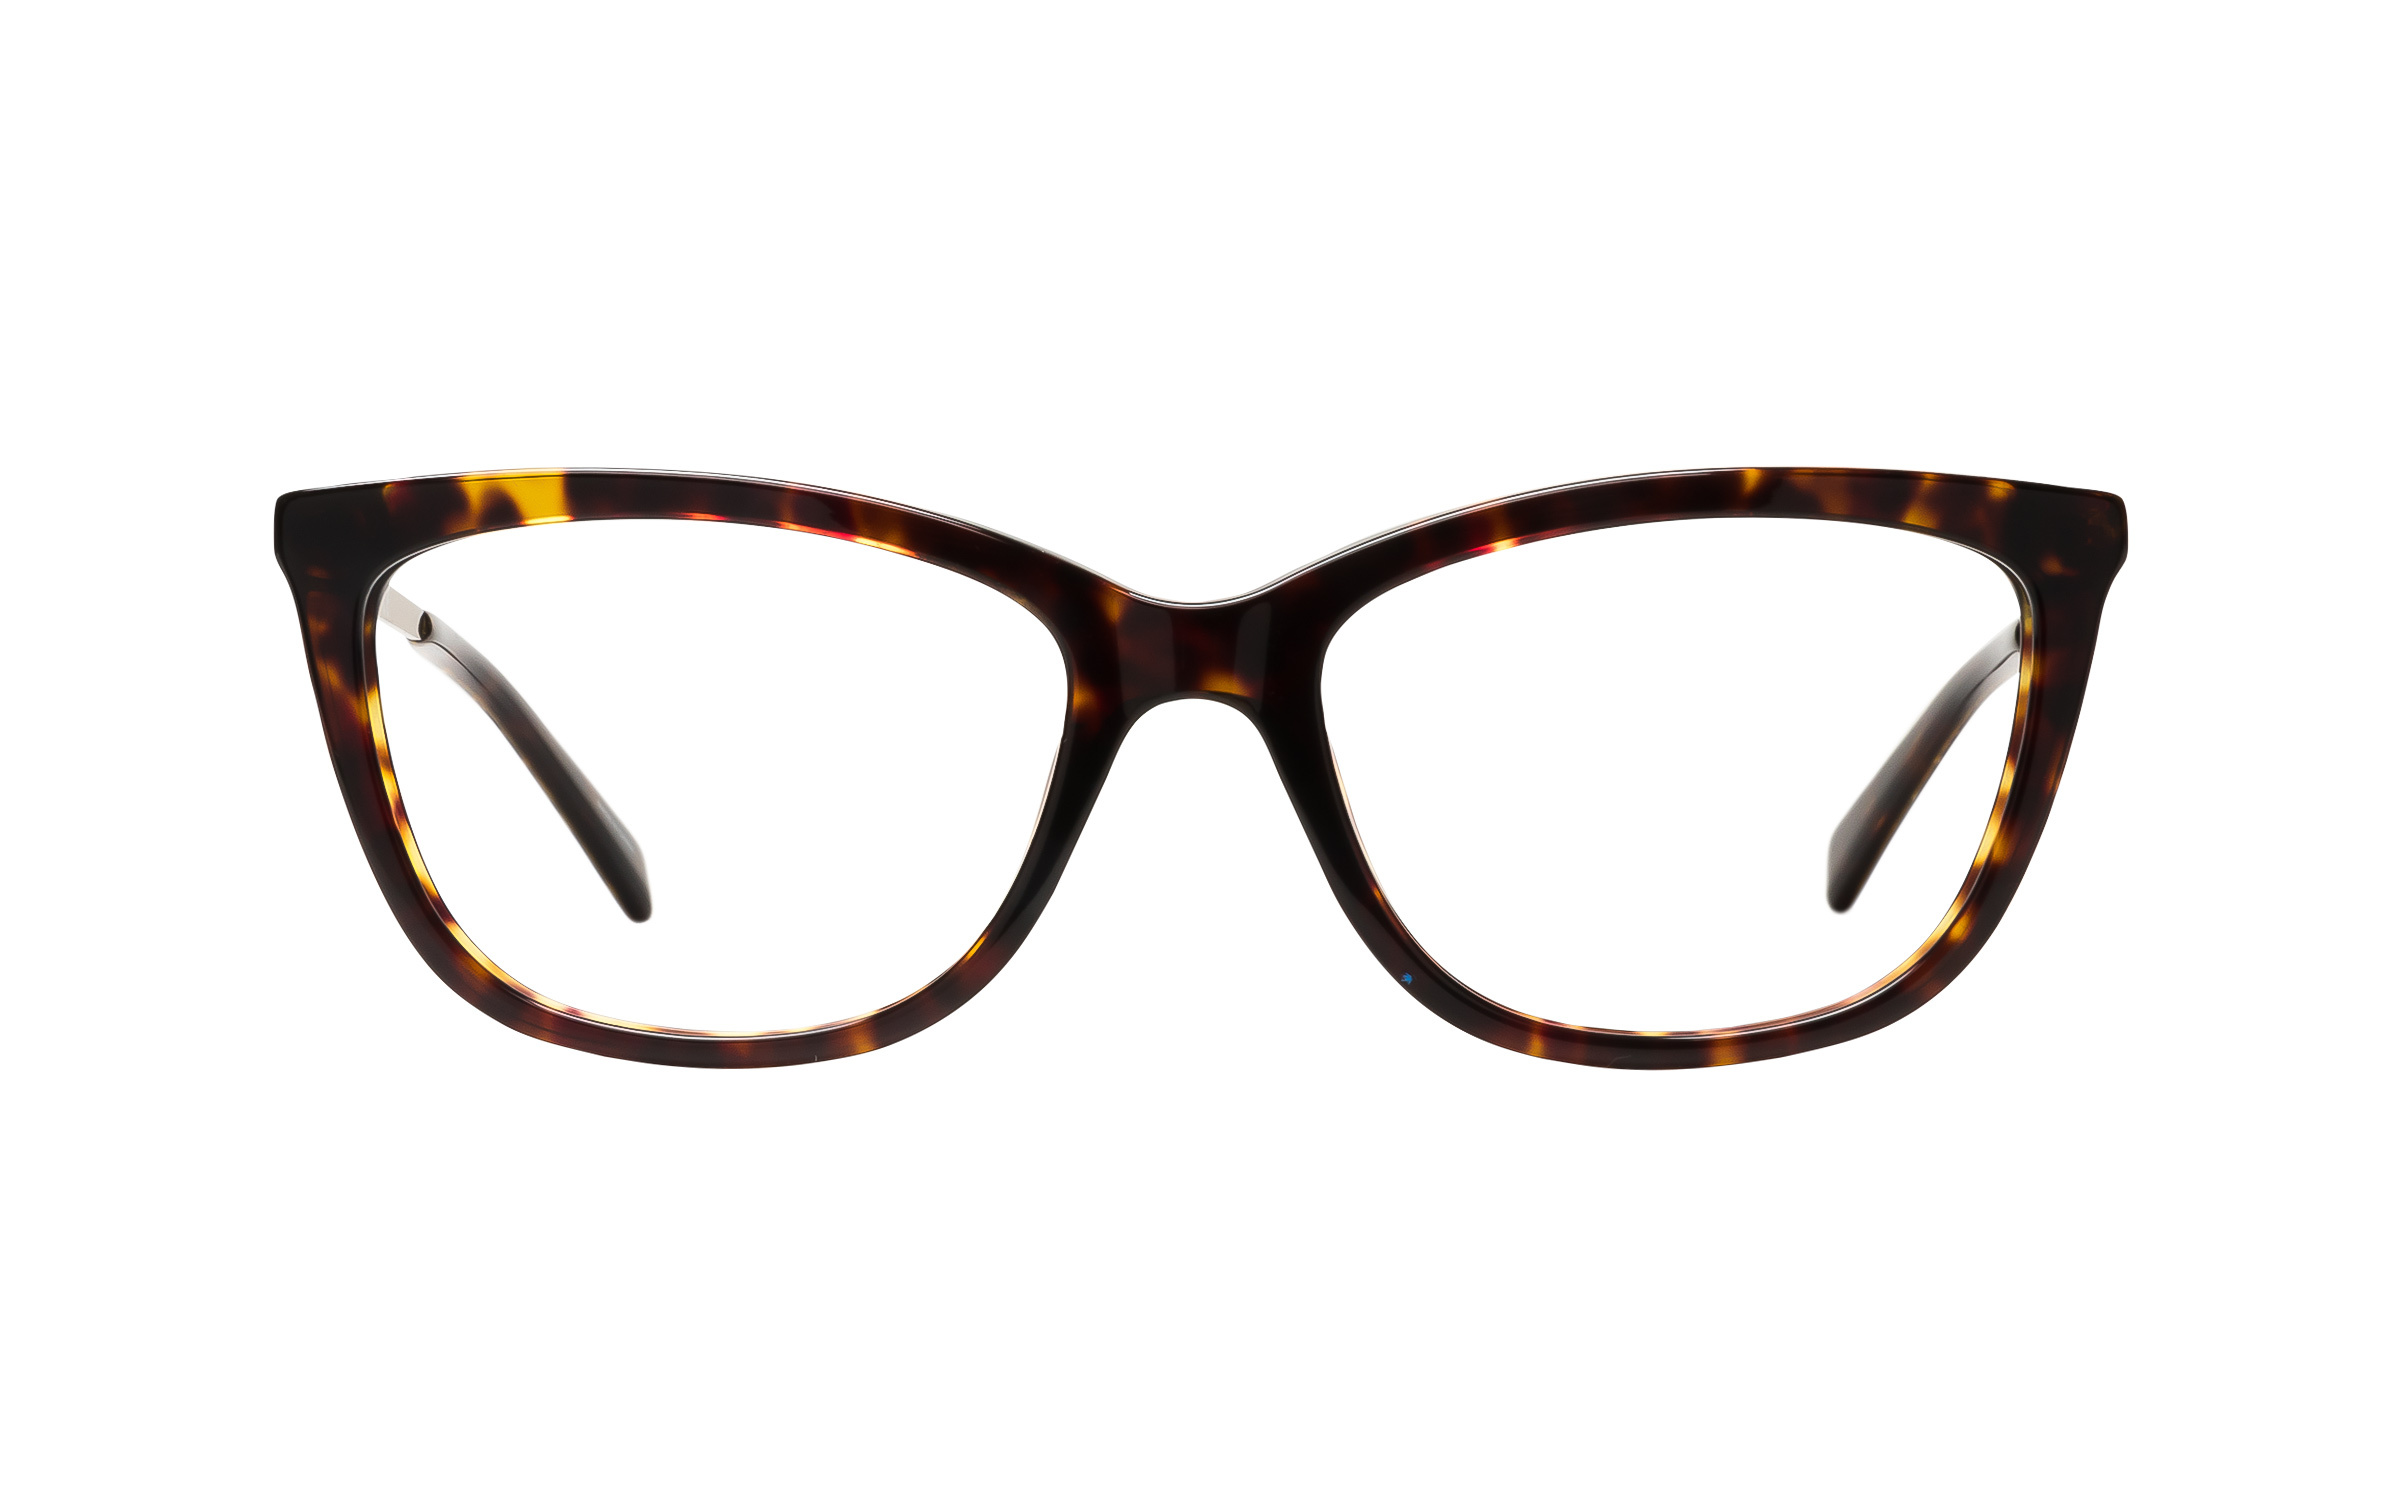 Coach Women's Tortoise/Brown Acetate/Plastic/Metal Glasses - Clearly Glasses Online